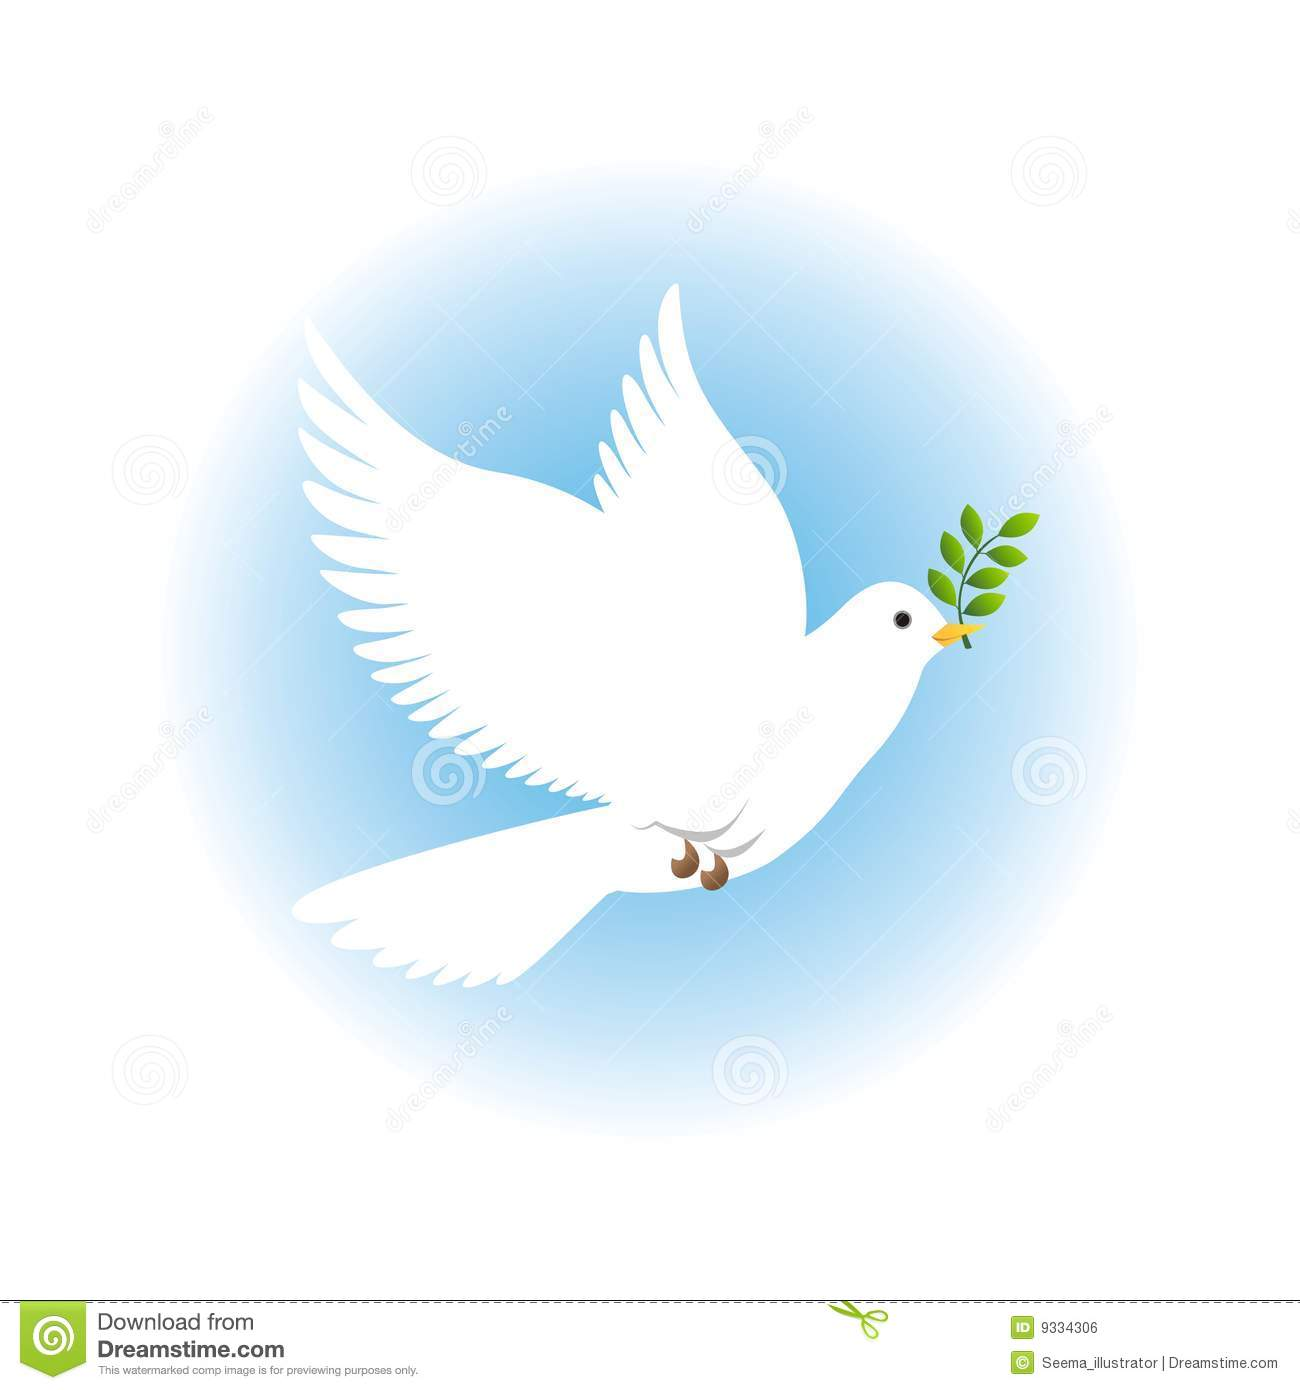 Vector illustration of peace dove with blue background.